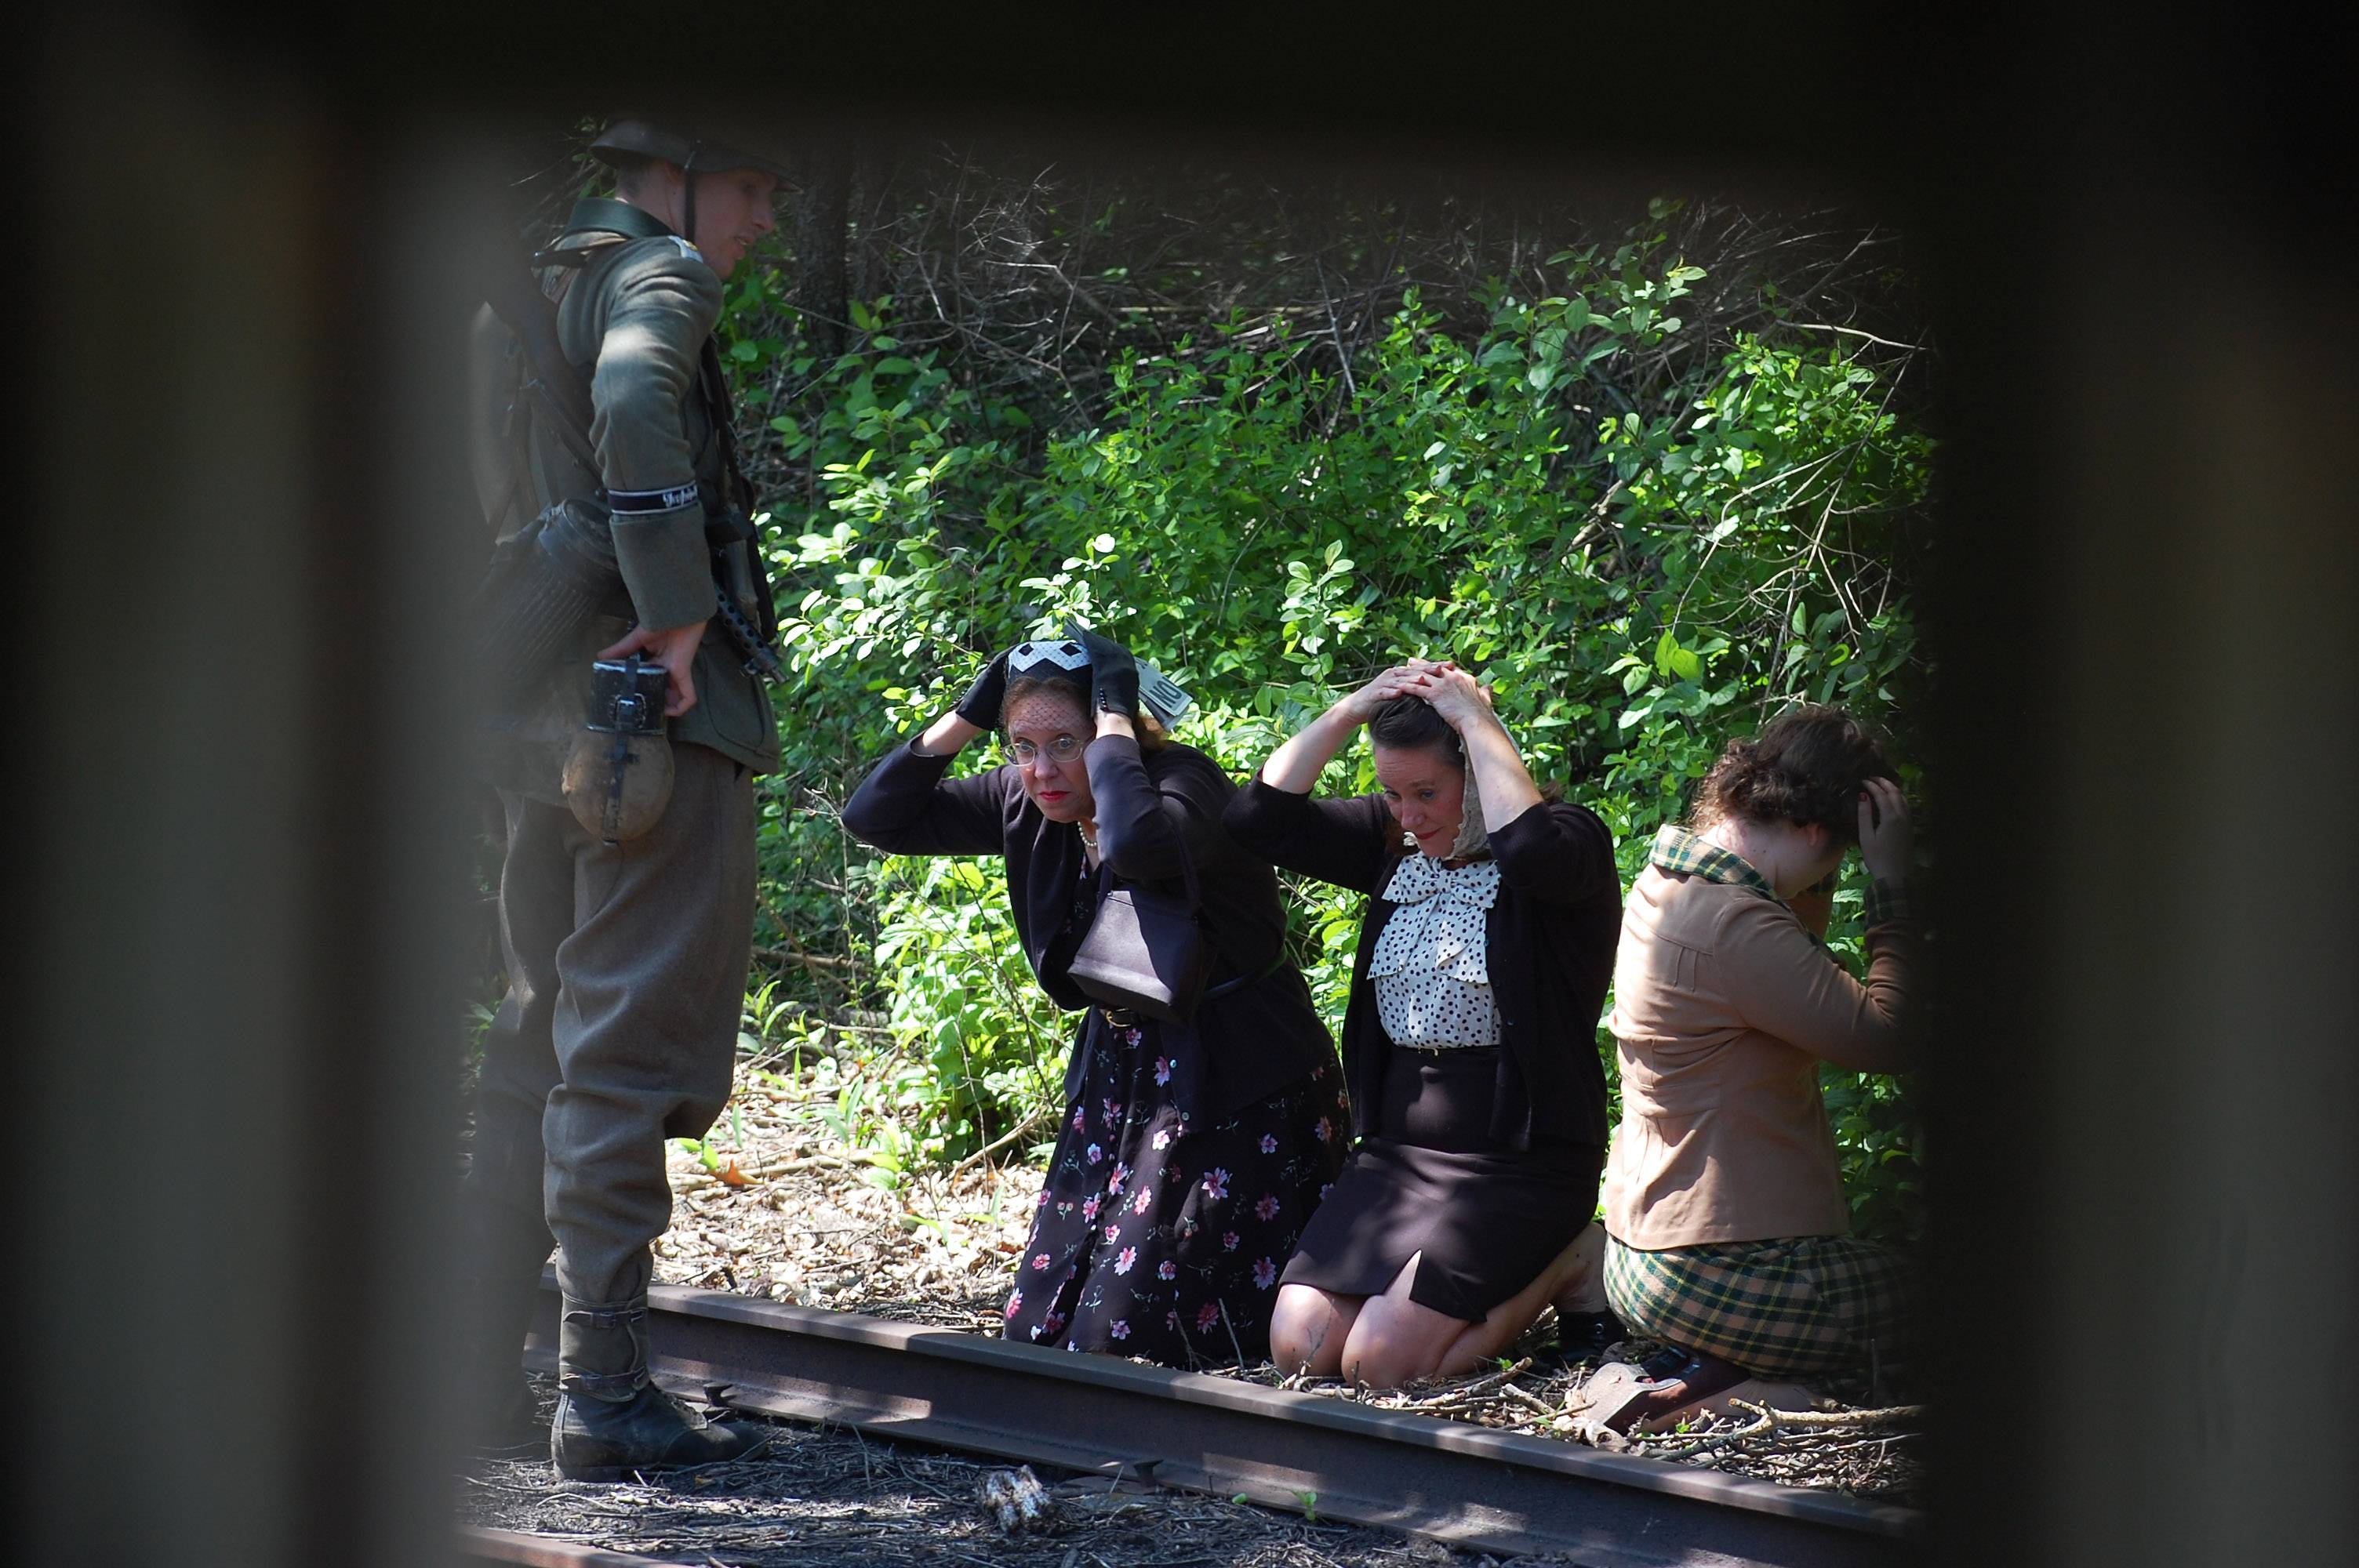 French civilians are pulled off the train by a German soldier and questioned in a scene from last year's 'Rails to Victory' at the Fox River Trolley Museum in South Elgin. This re-enactment takes its audience on a trolley tour of Occupied France, recreating the European interurban rail line that ran between Paris and Rouen, along the Seine River, during the summer of 1944.